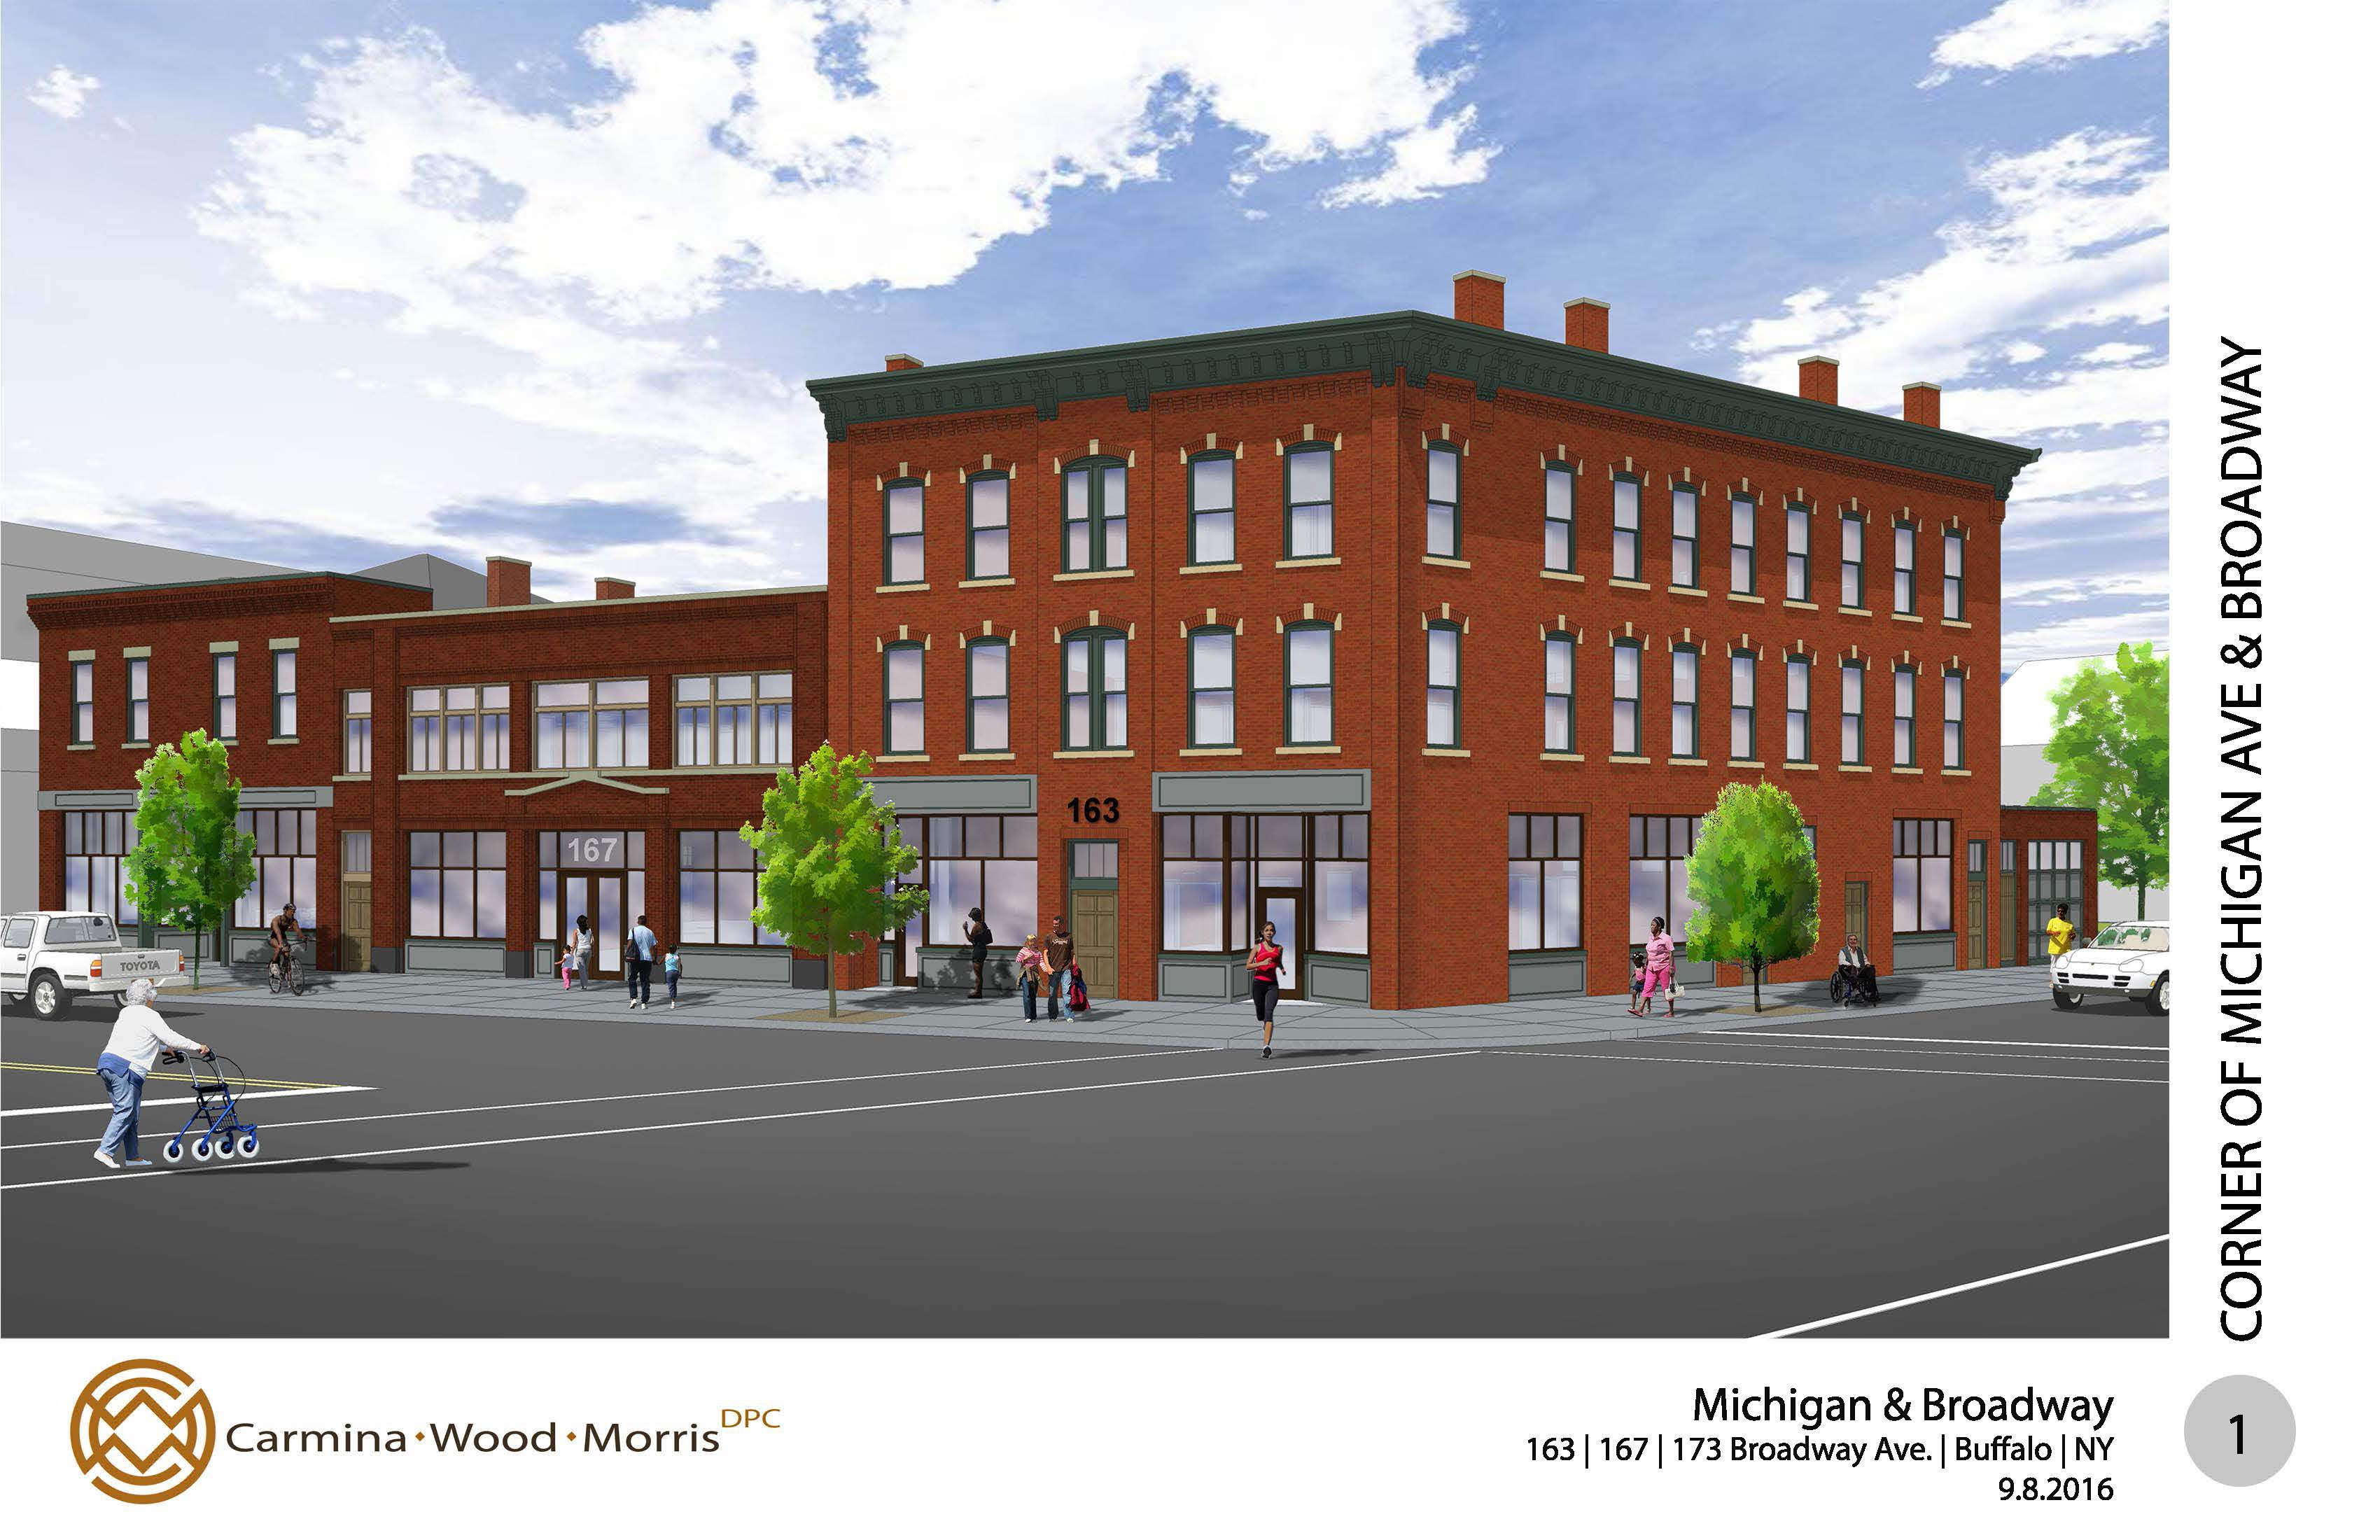 Architects released this rendering of the development proposed for the Dellenbaugh block.